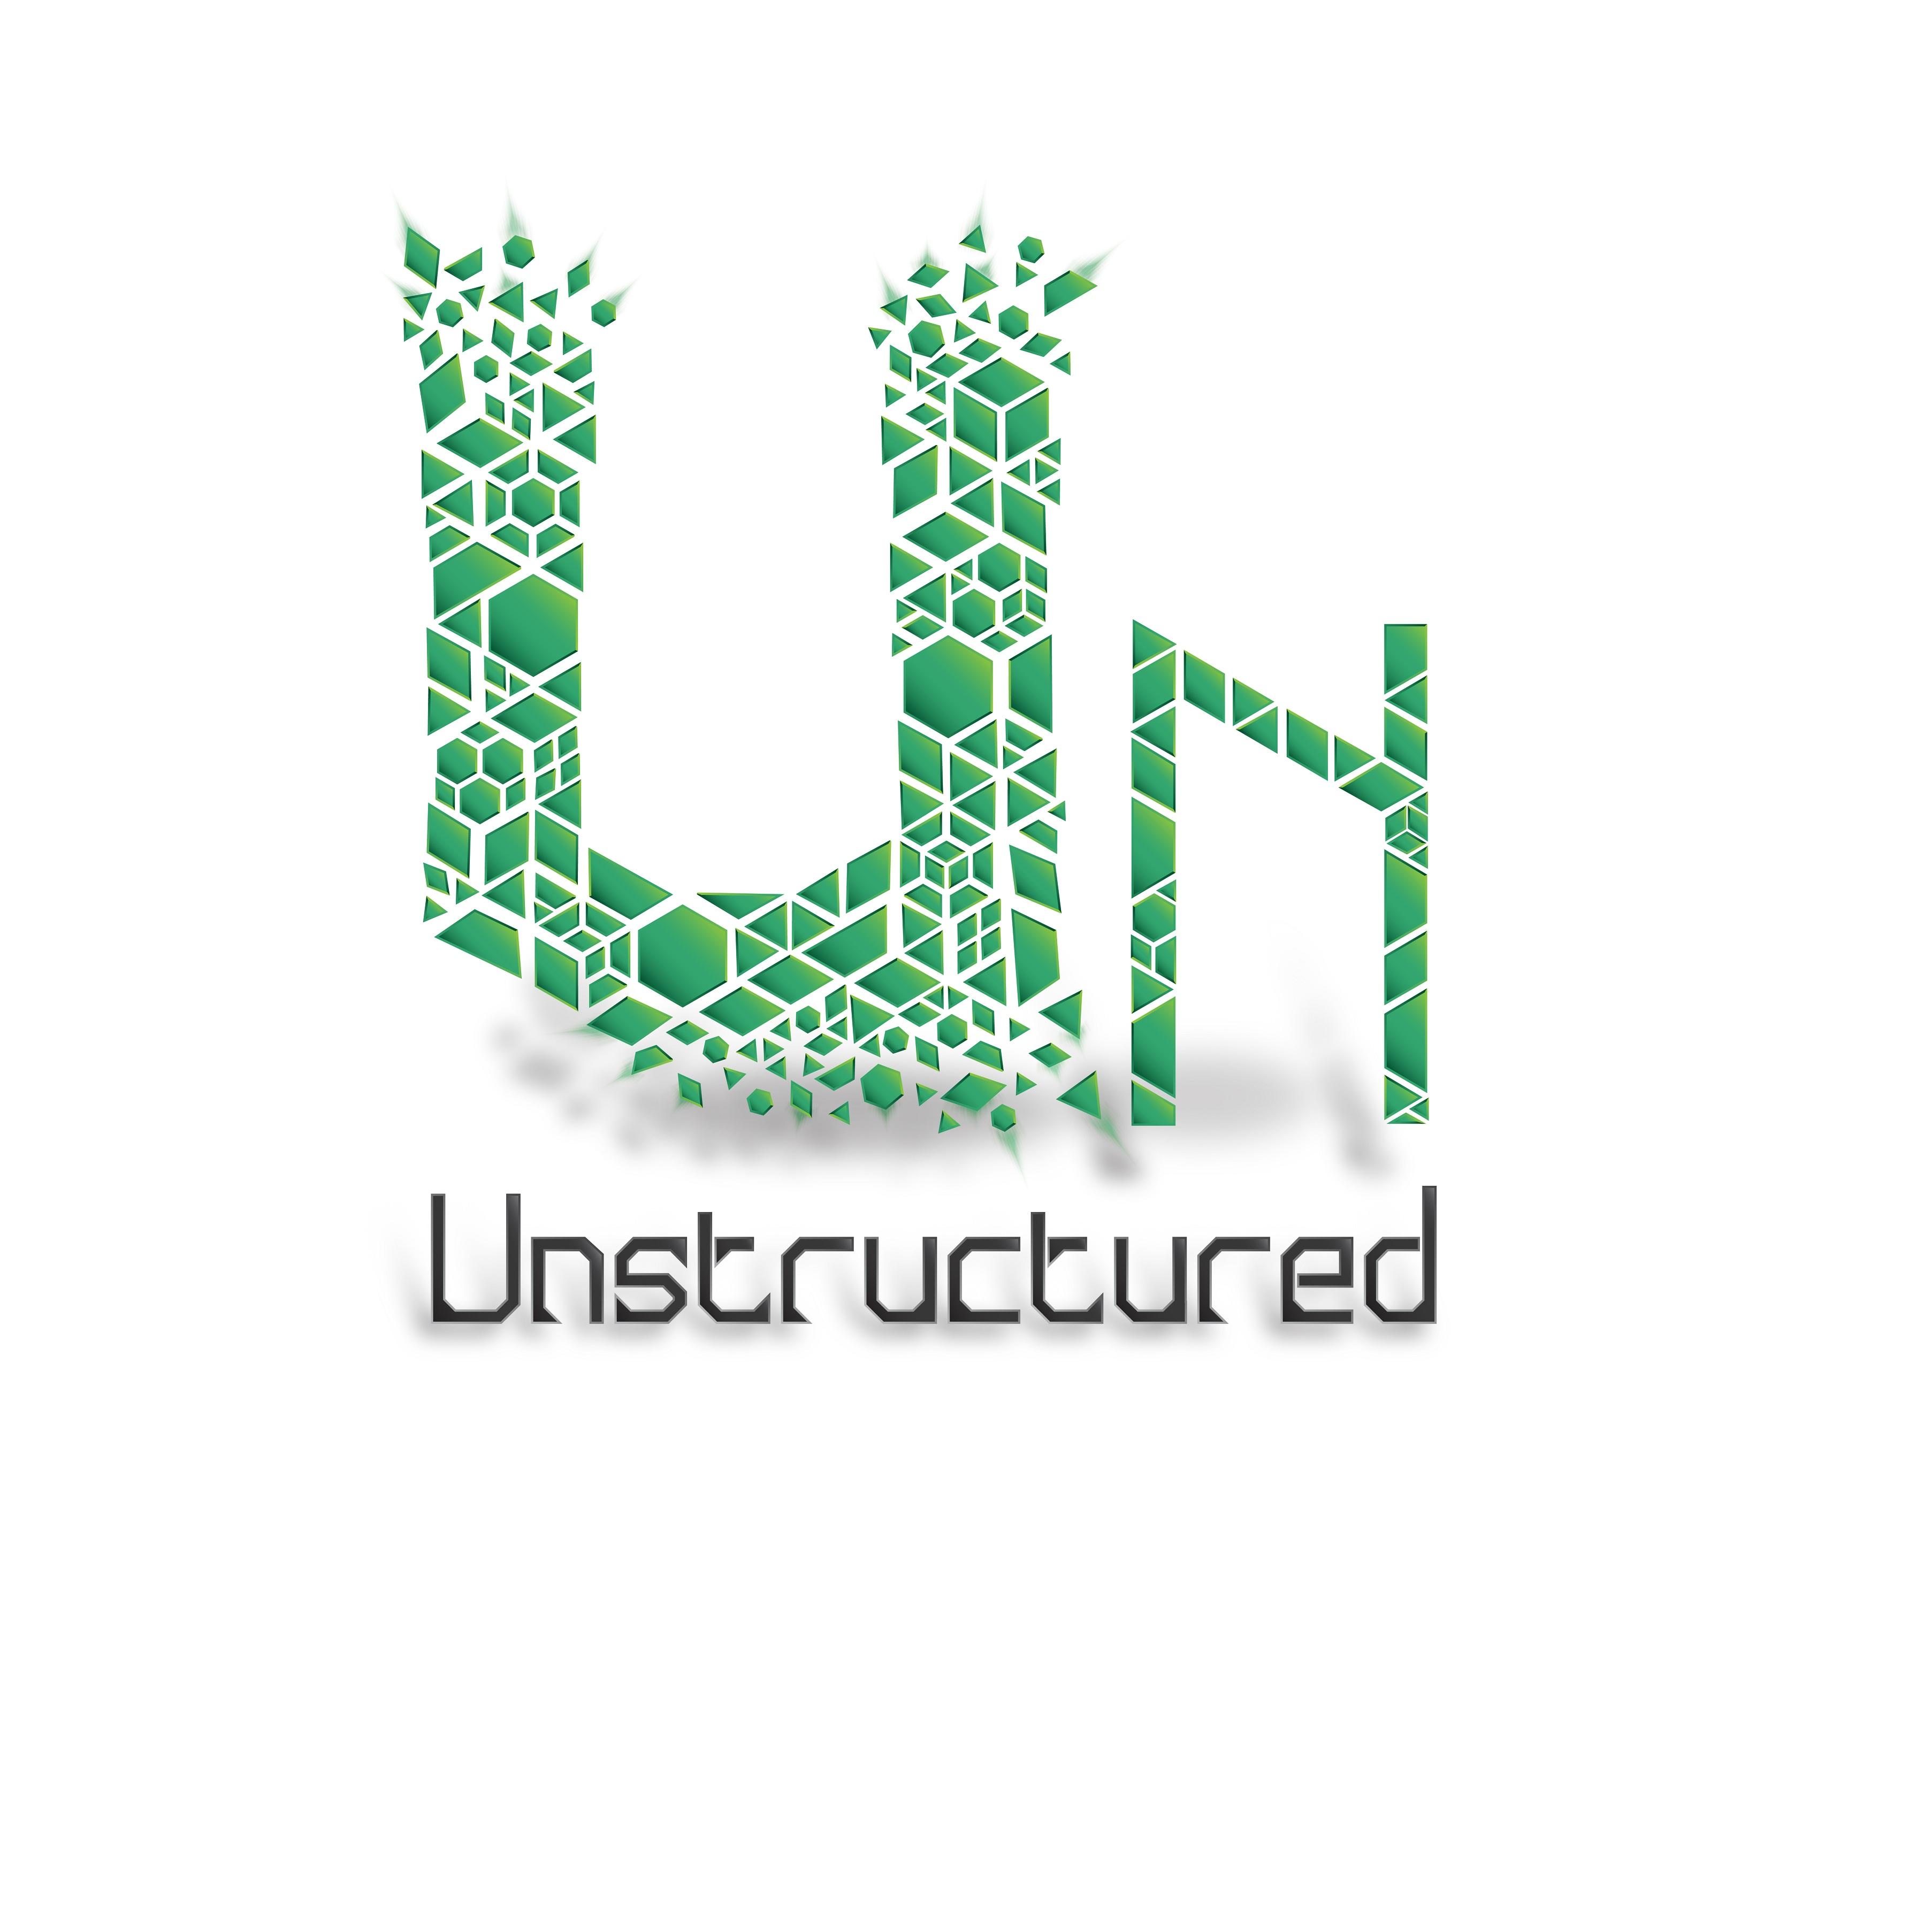 Unstructured Data FinalDYNAMIC-01